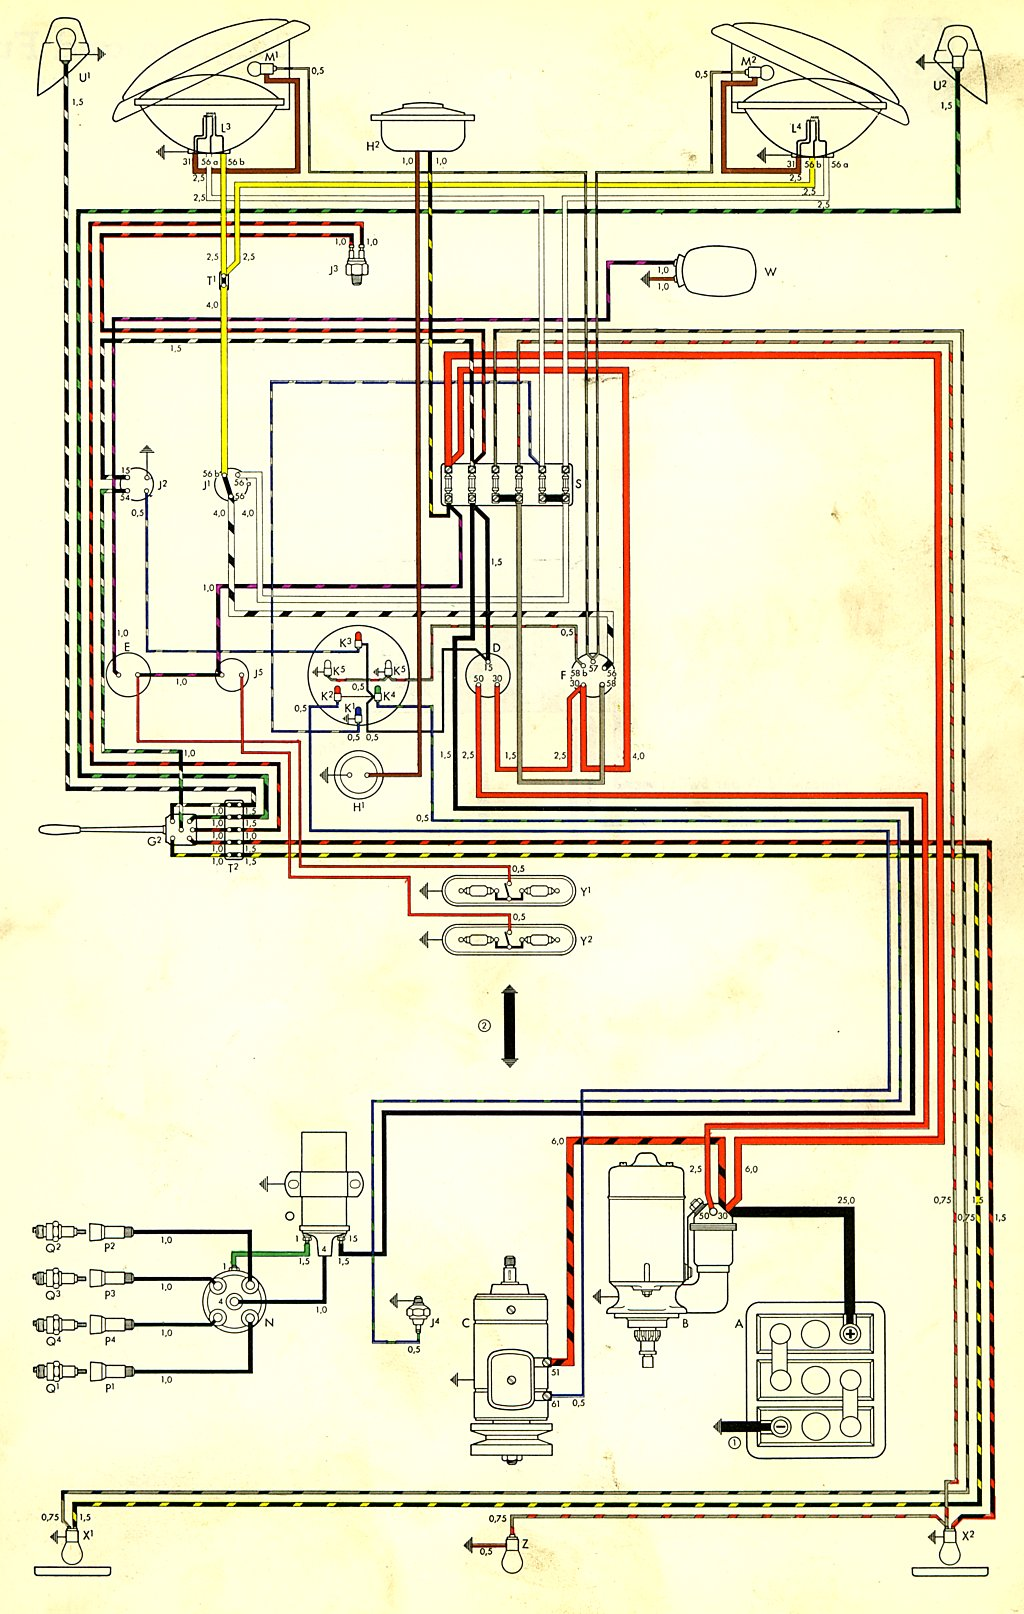 bus_59_USA thesamba com type 2 wiring diagrams 1970 vw beetle electrical wiring diagram at soozxer.org